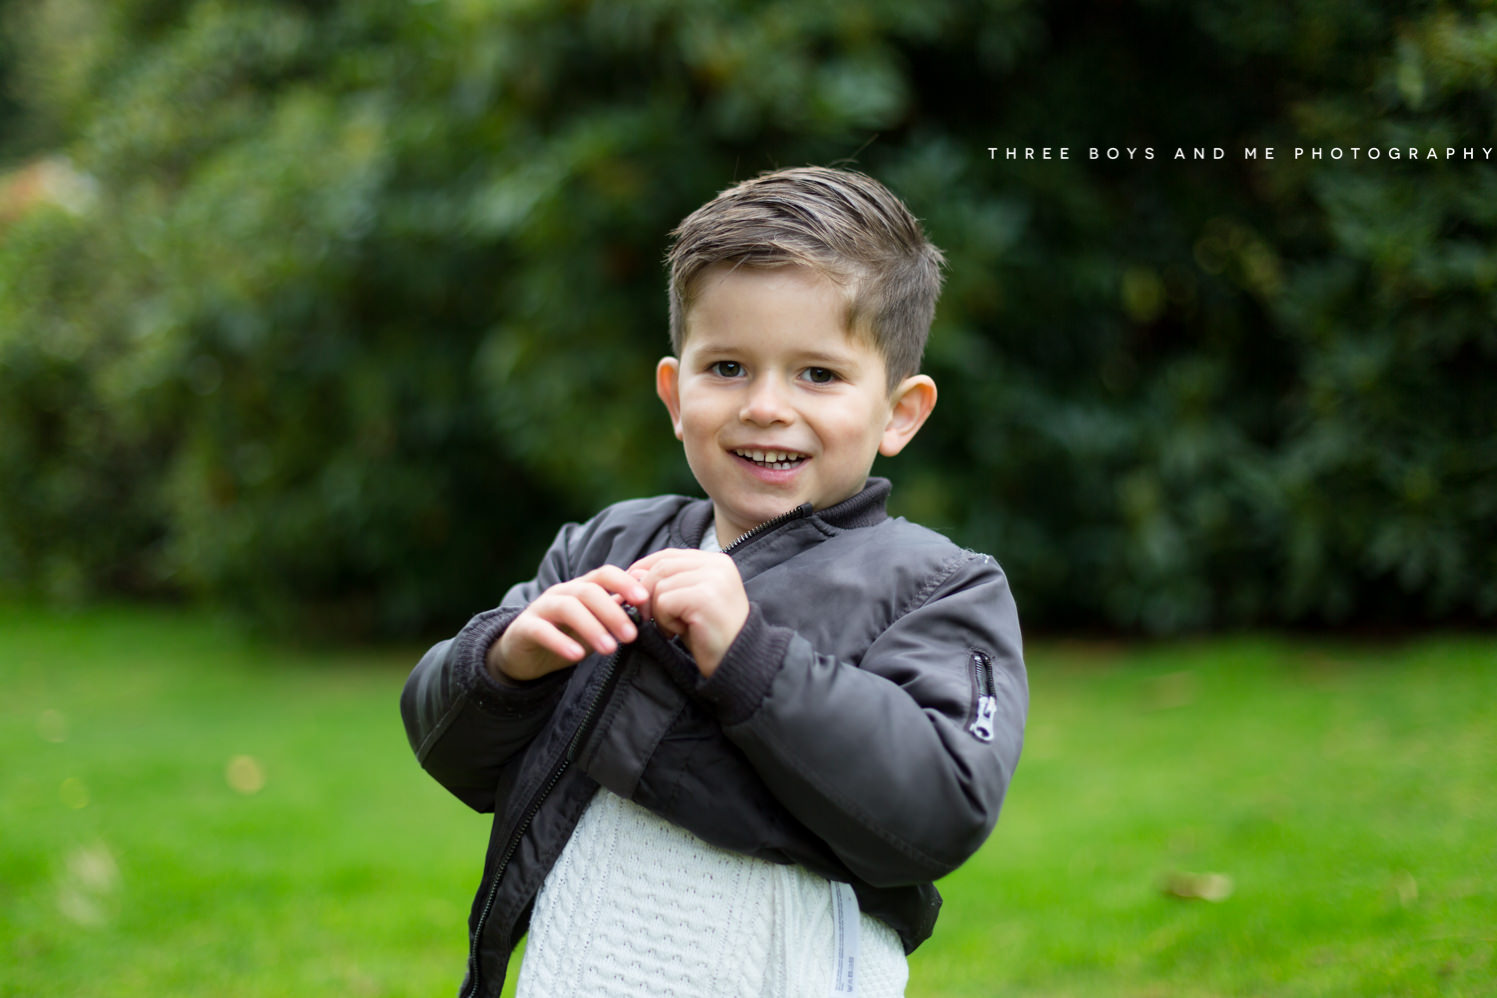 autumn photoshoot children's documentary photography 3 Boys & Me Photography